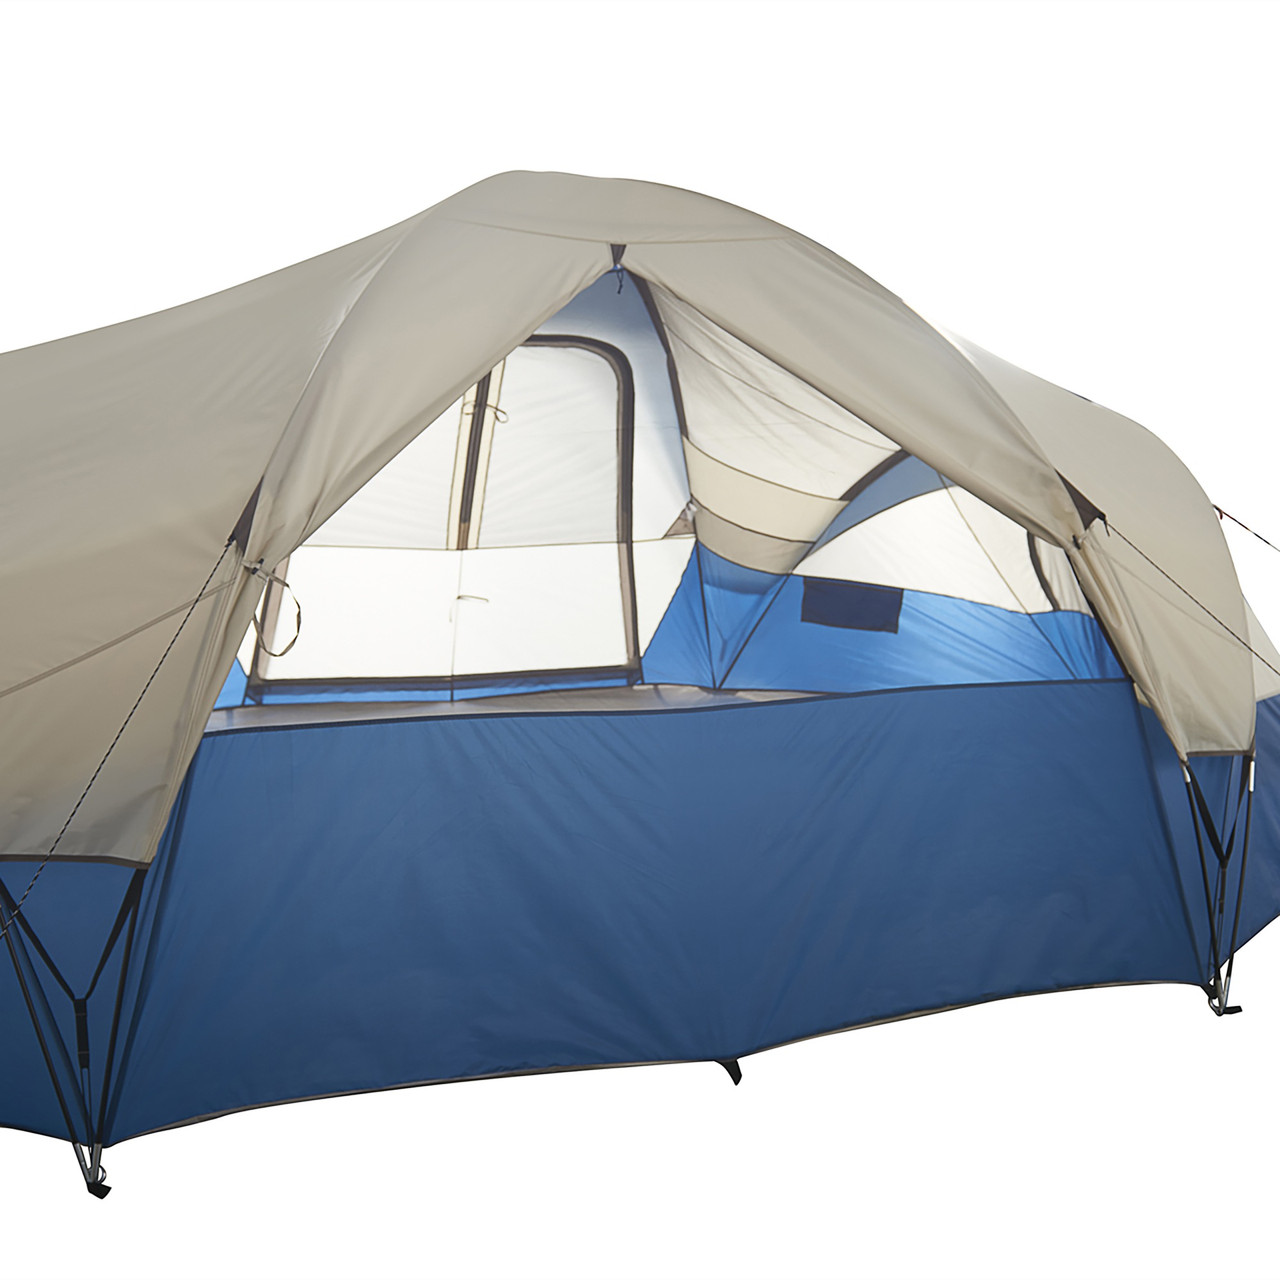 Wenzel Pinyon 10 Person Dome Tent, blue/white, showing rear window, opened